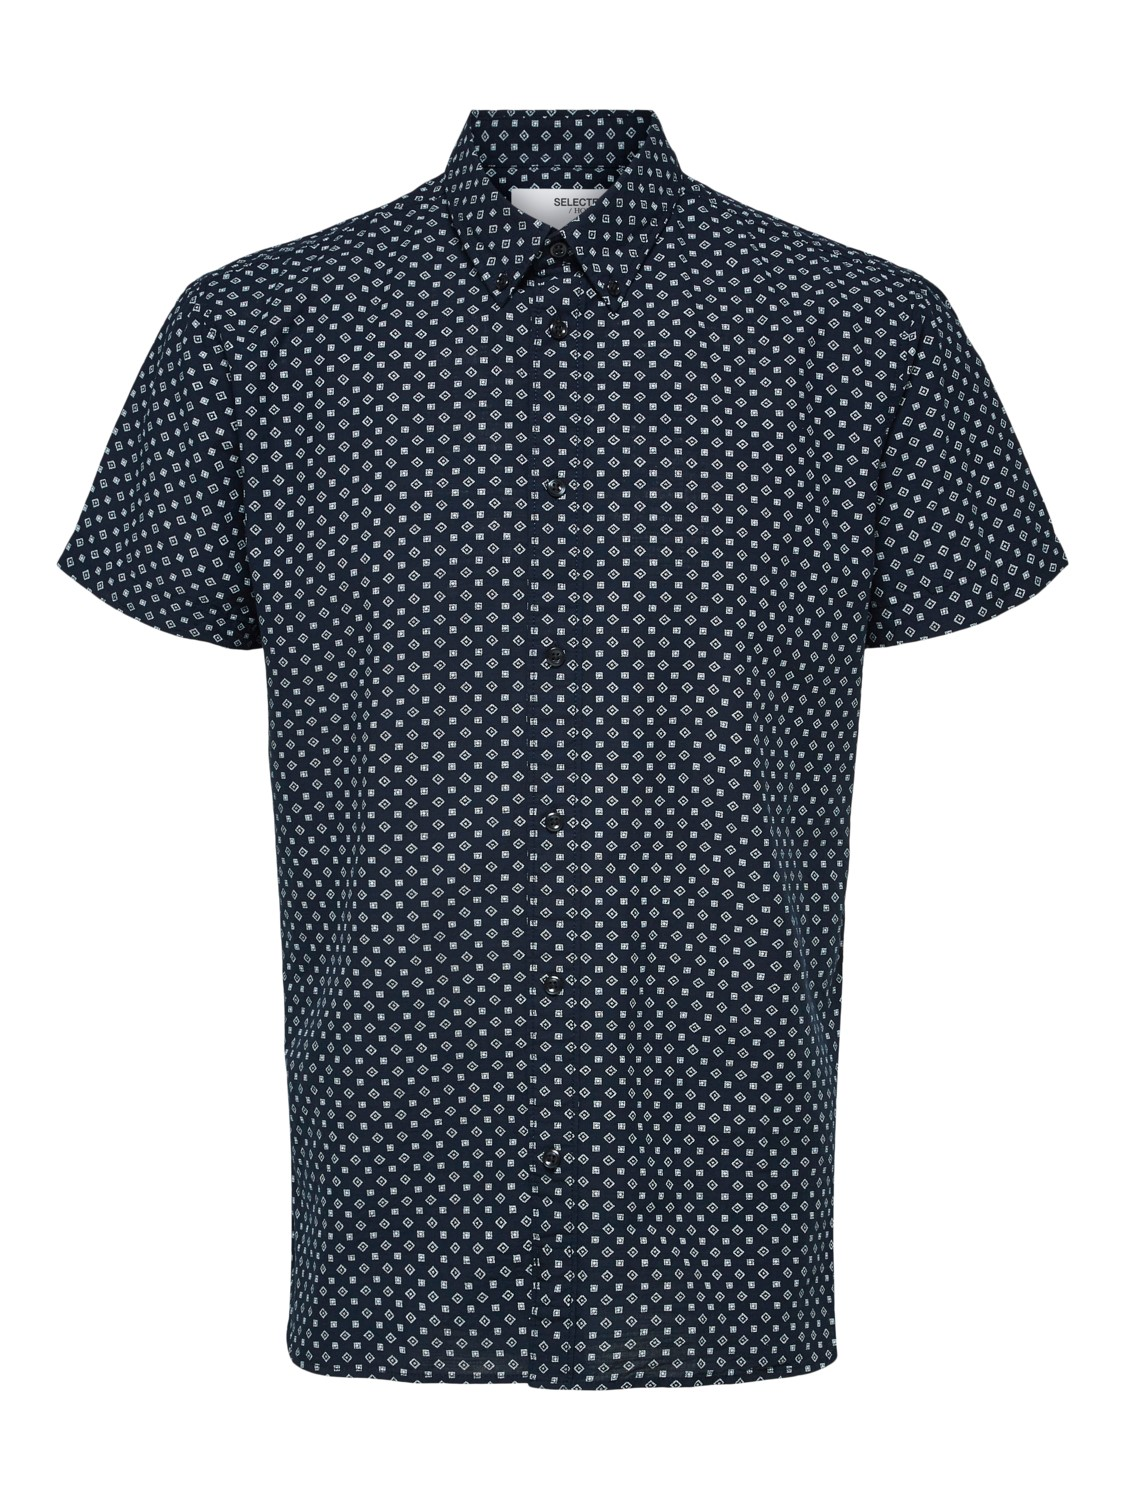 Selected Skjorte - SLHSLIMHART SHIRT DARK BLUE | Gate36 Hobro